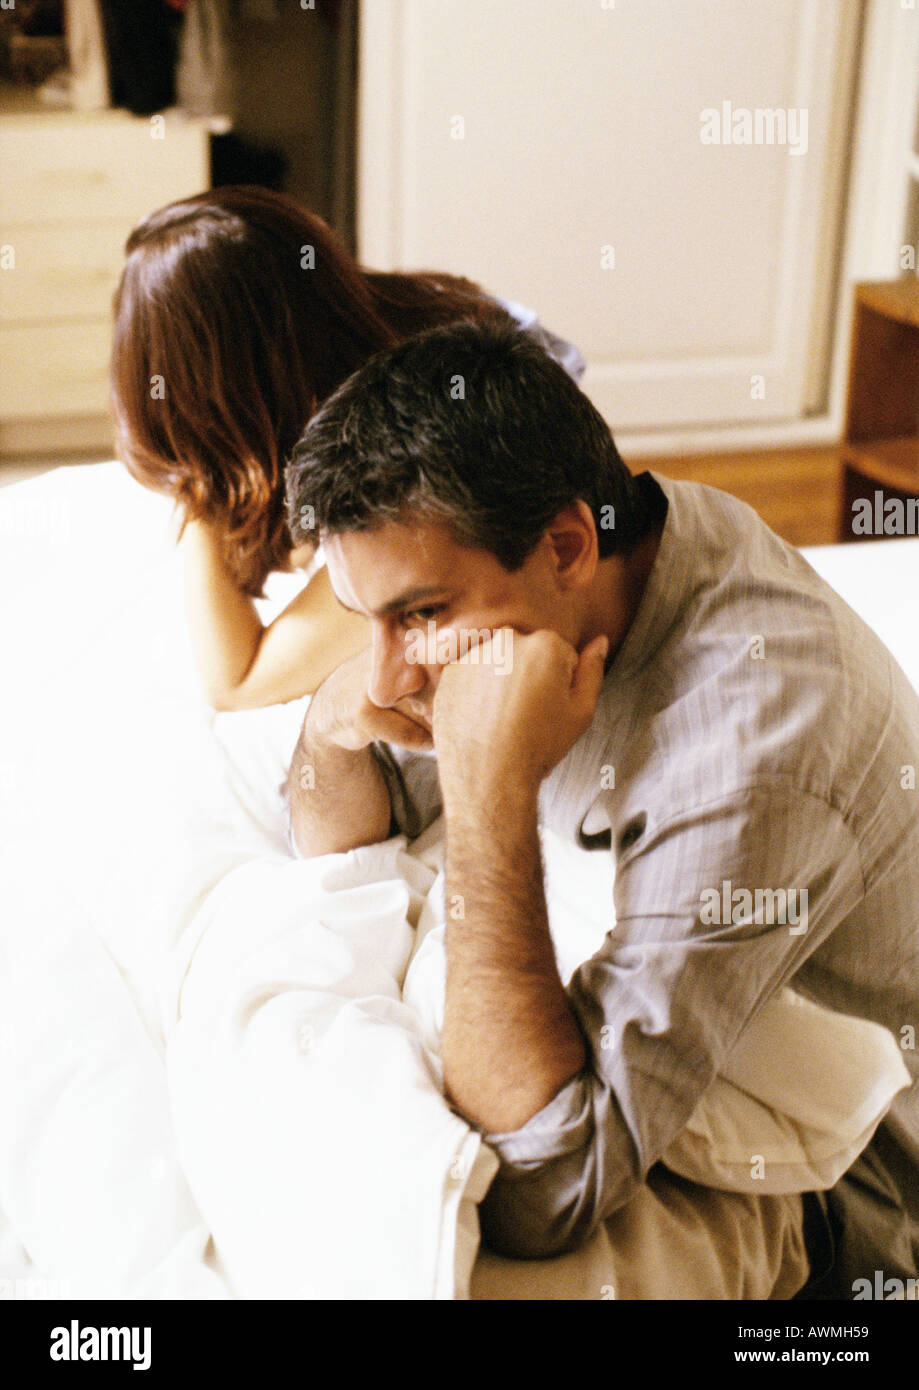 Man and woman sitting up in bed, leaning heads on hands, waist up, side view - Stock Image